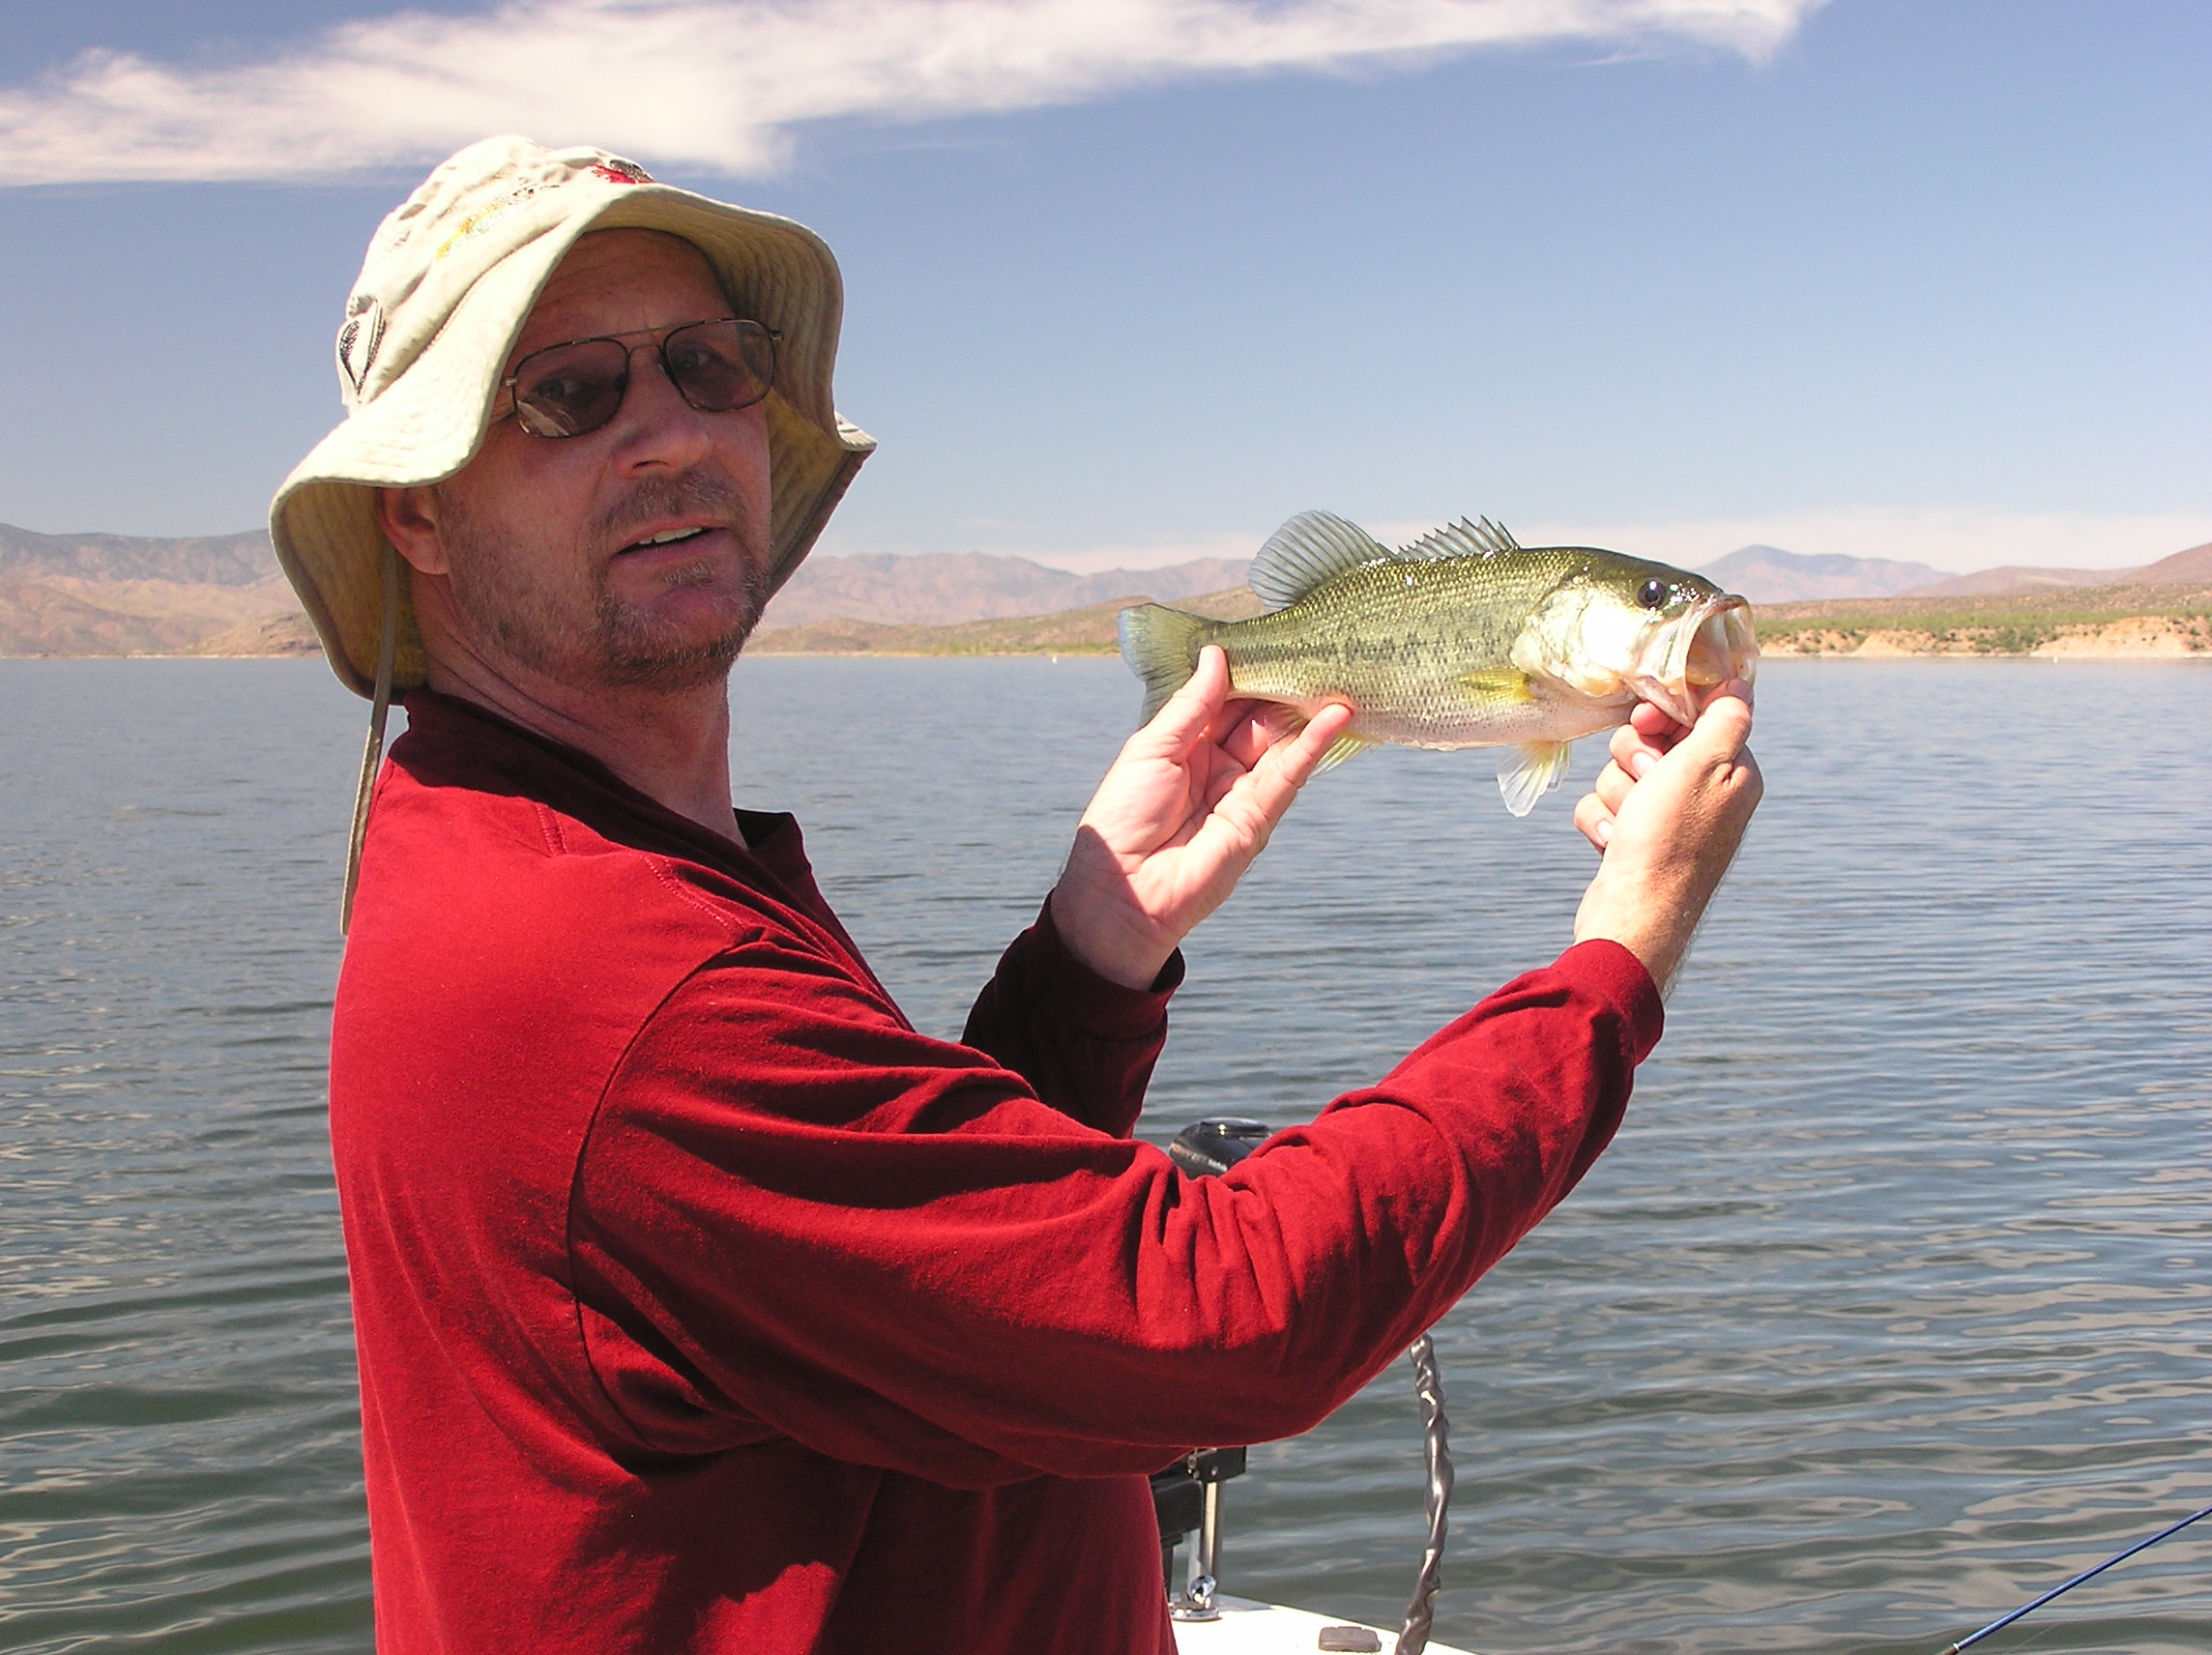 Paul C  Rasmussen, age 57 of Montana City, Formerly of Mesa